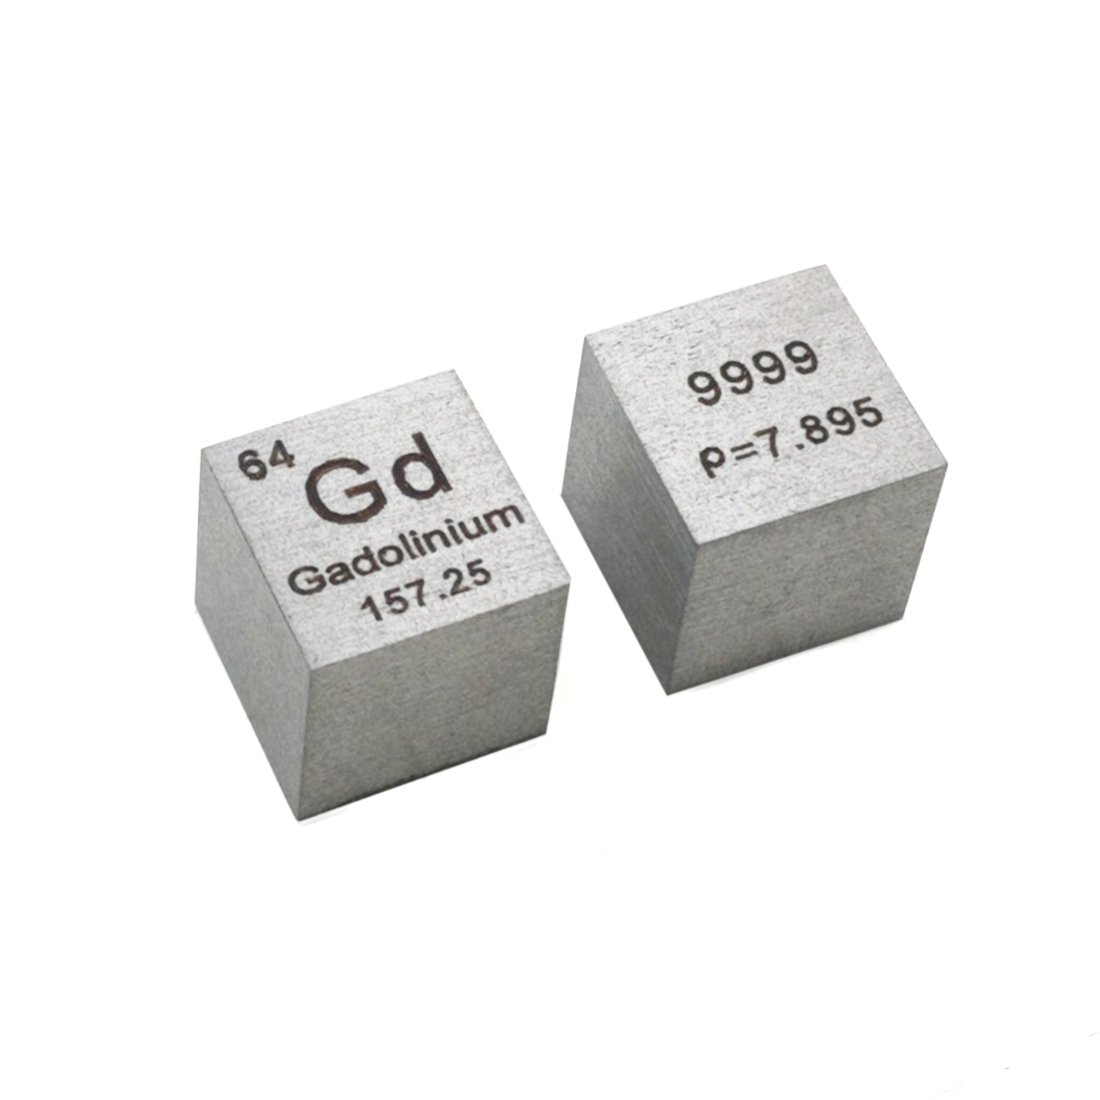 10 X 10 X 10mm Wiredrawing Metal Gadolinium Samarium  Yttrium Molybdenum Cube Rare Earth Elements Cube Periodic Elements Cube